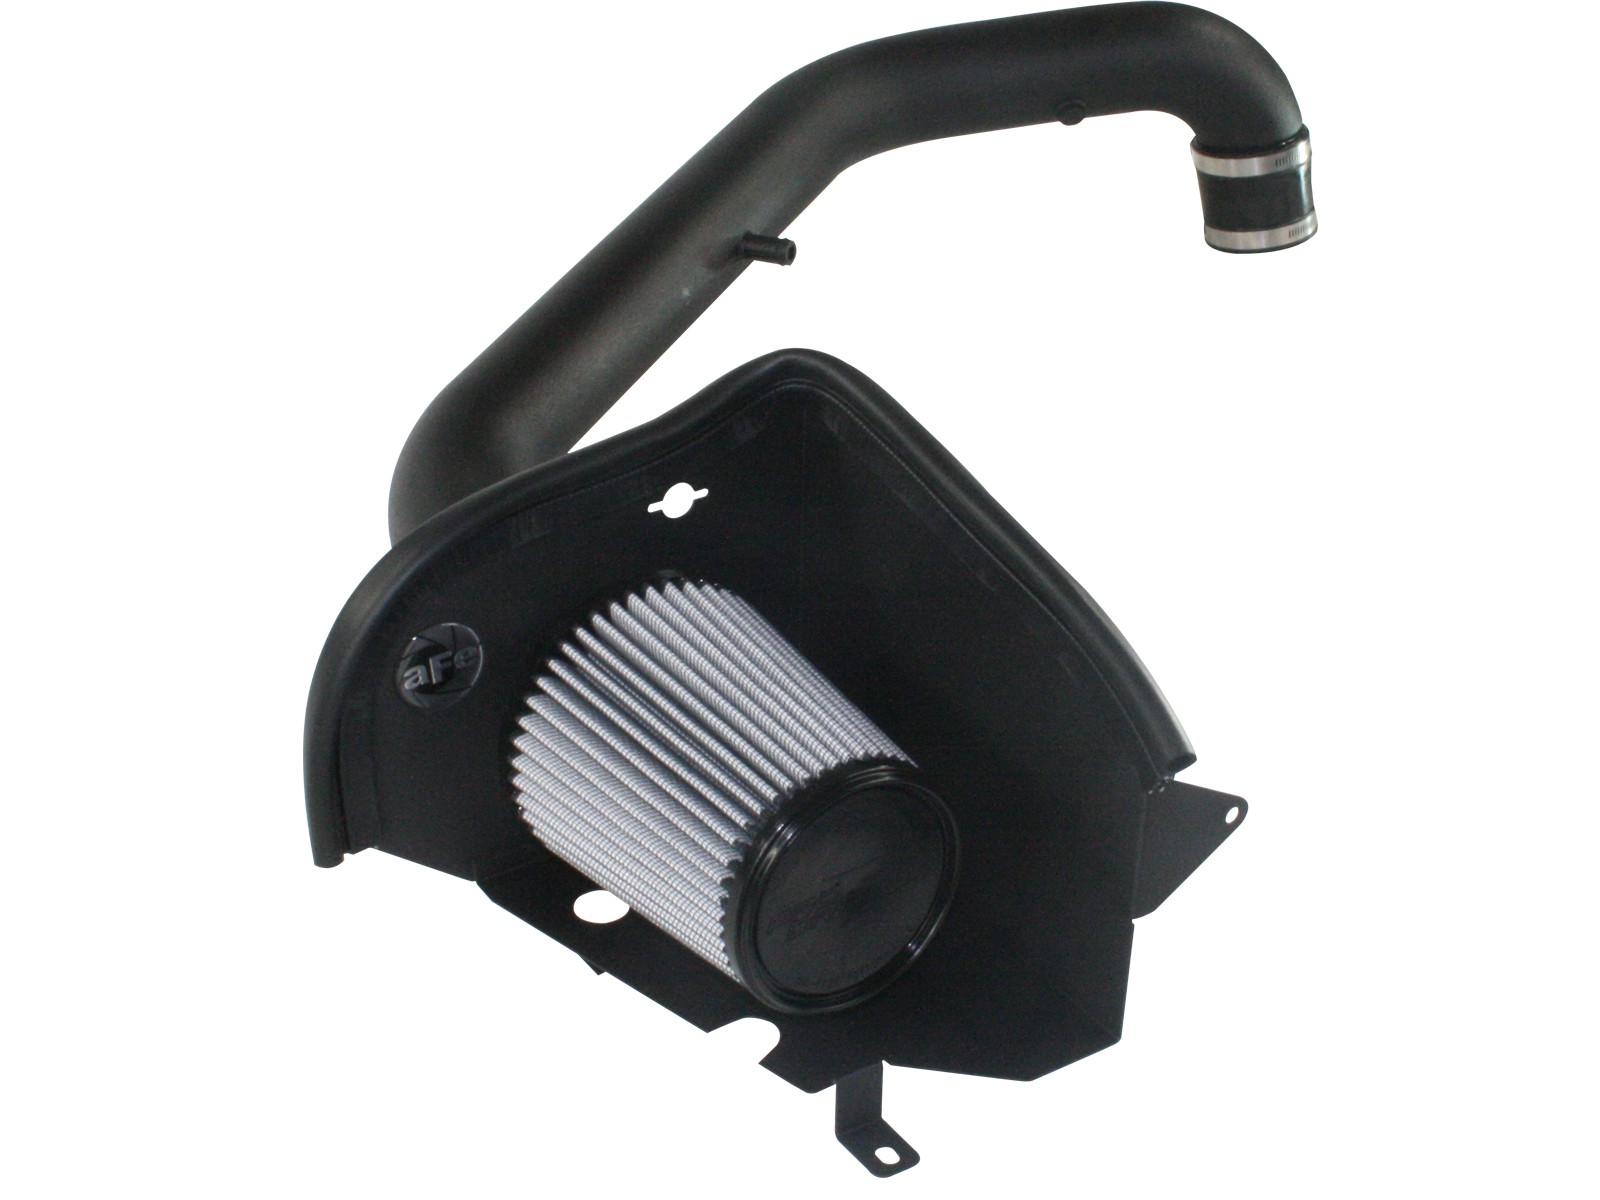 aFe POWER 51-10142 Magnum FORCE Stage-2 Pro DRY S Cold Air Intake System